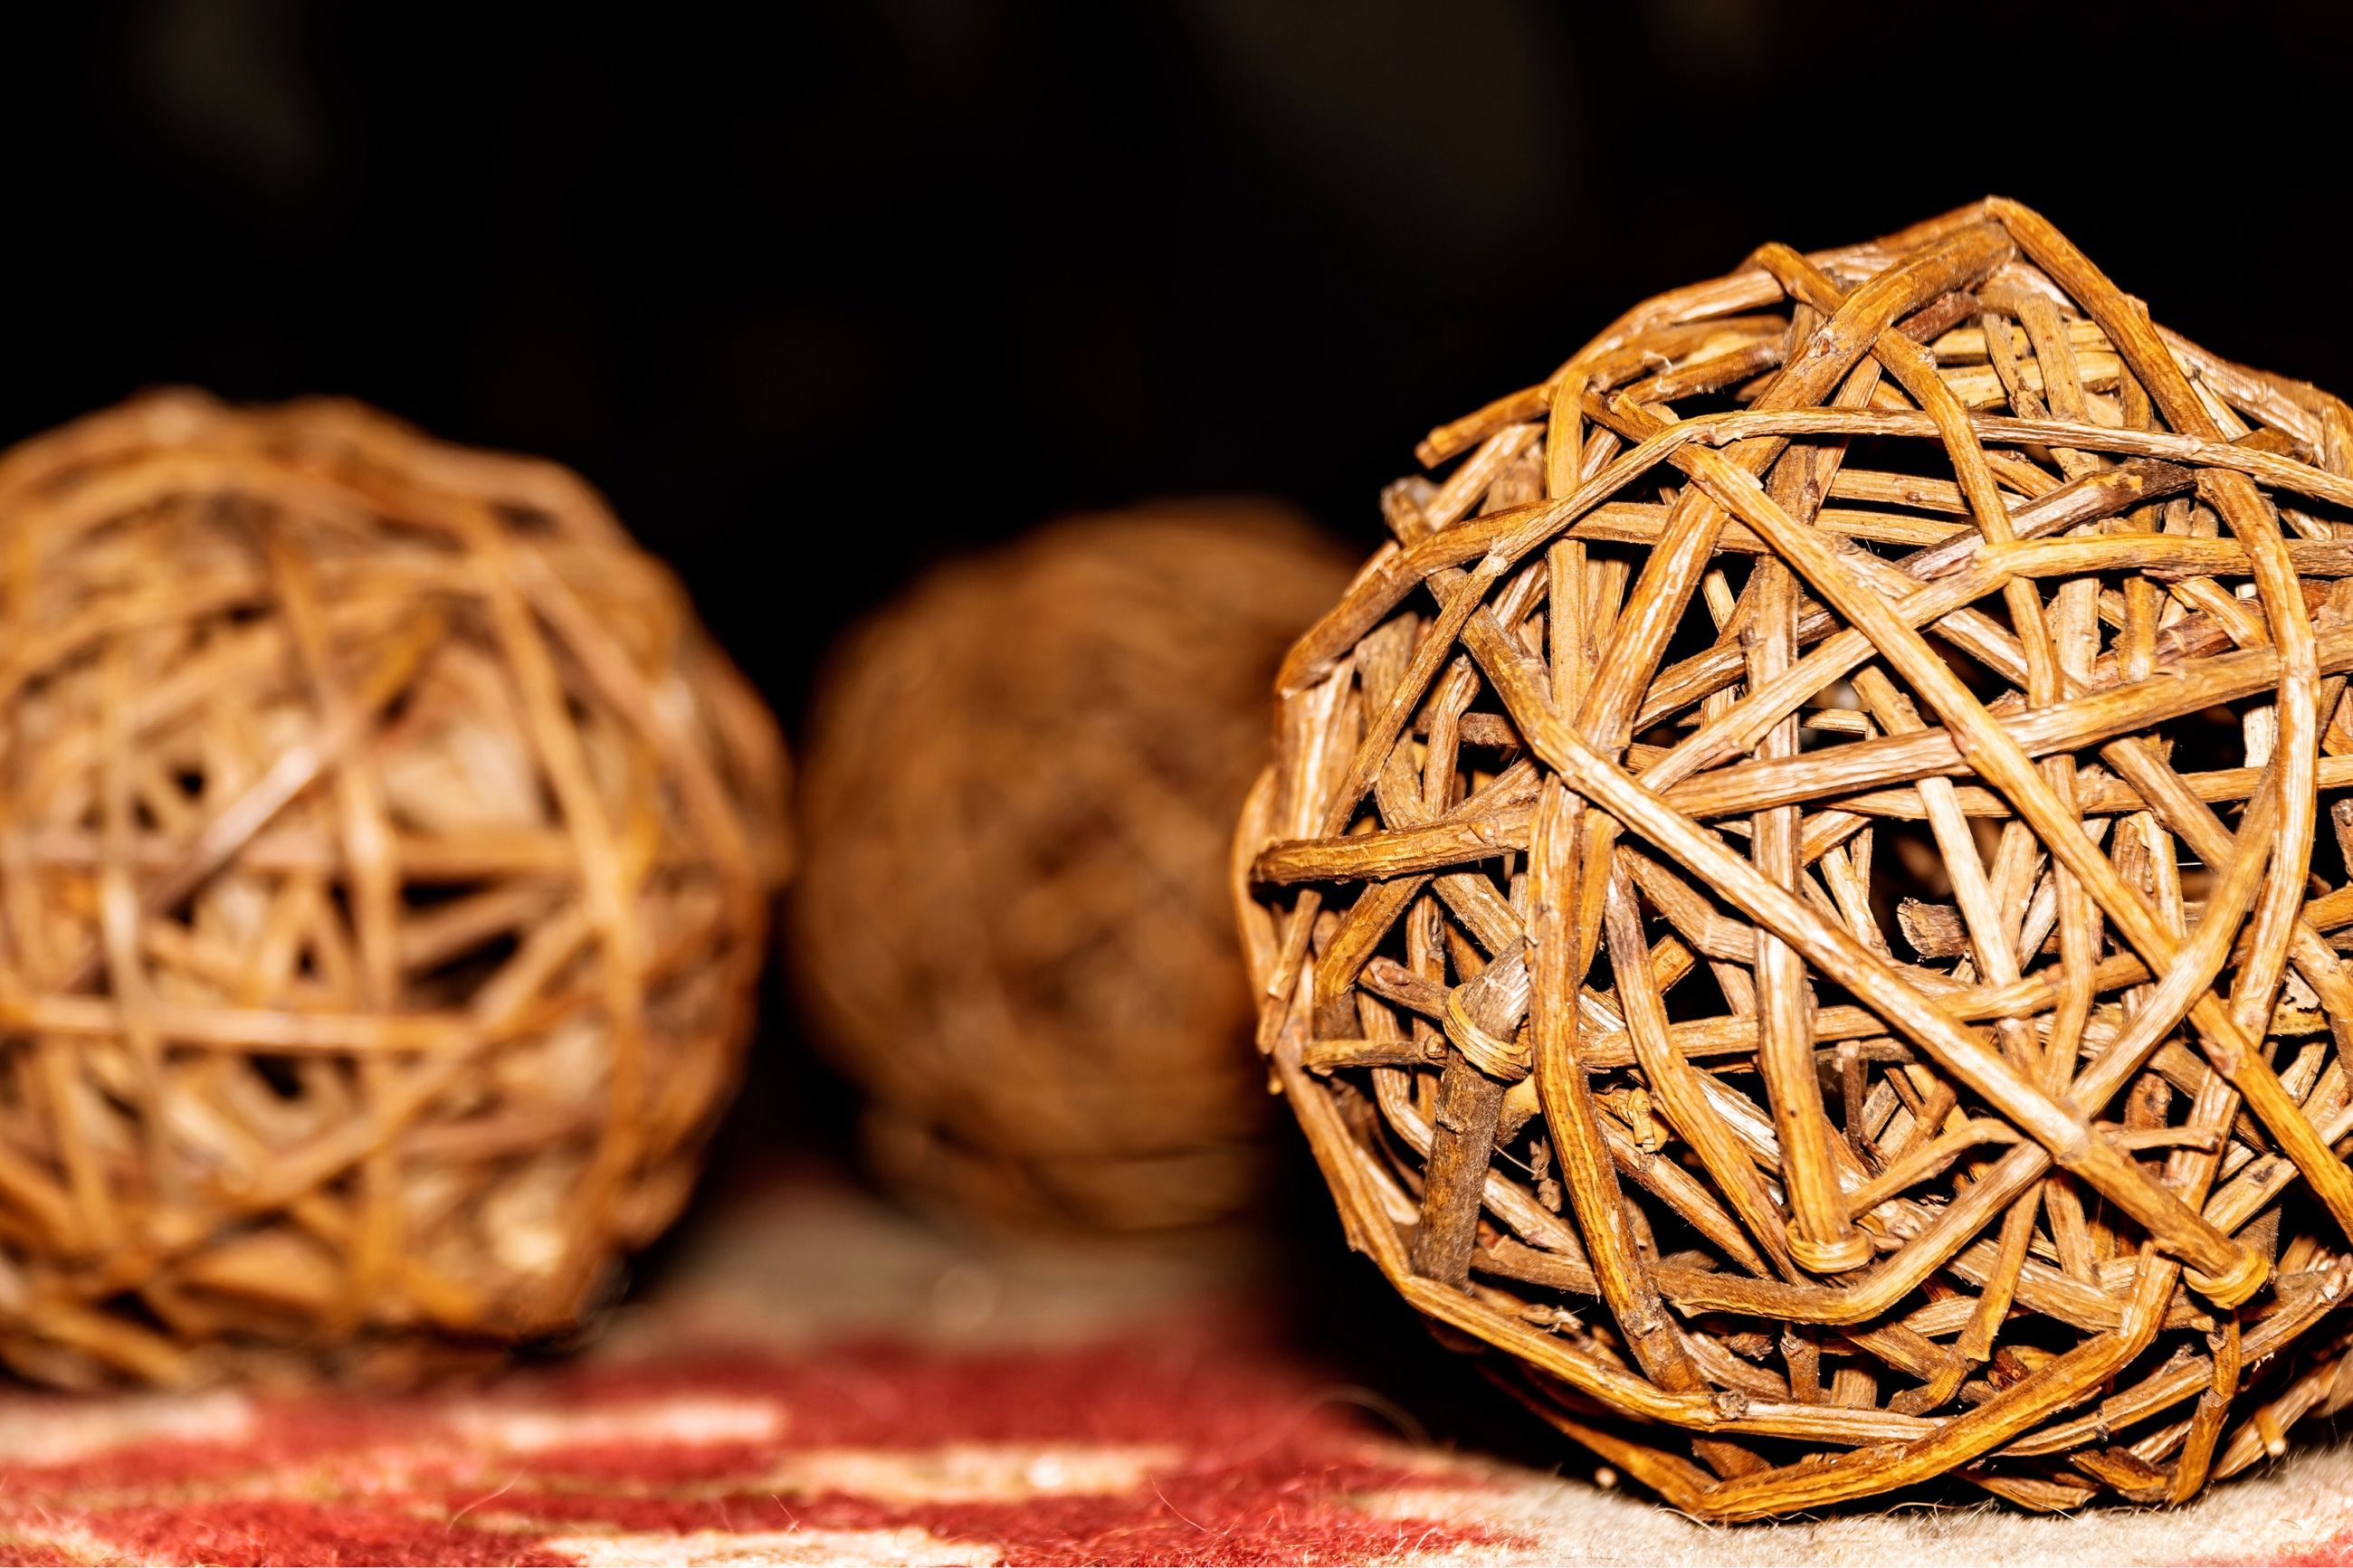 still life, close-up, indoors, focus on foreground, no people, sphere, pattern, craft, art and craft, table, container, brown, basket, food, wicker, food and drink, creativity, wood - material, freshness, ball